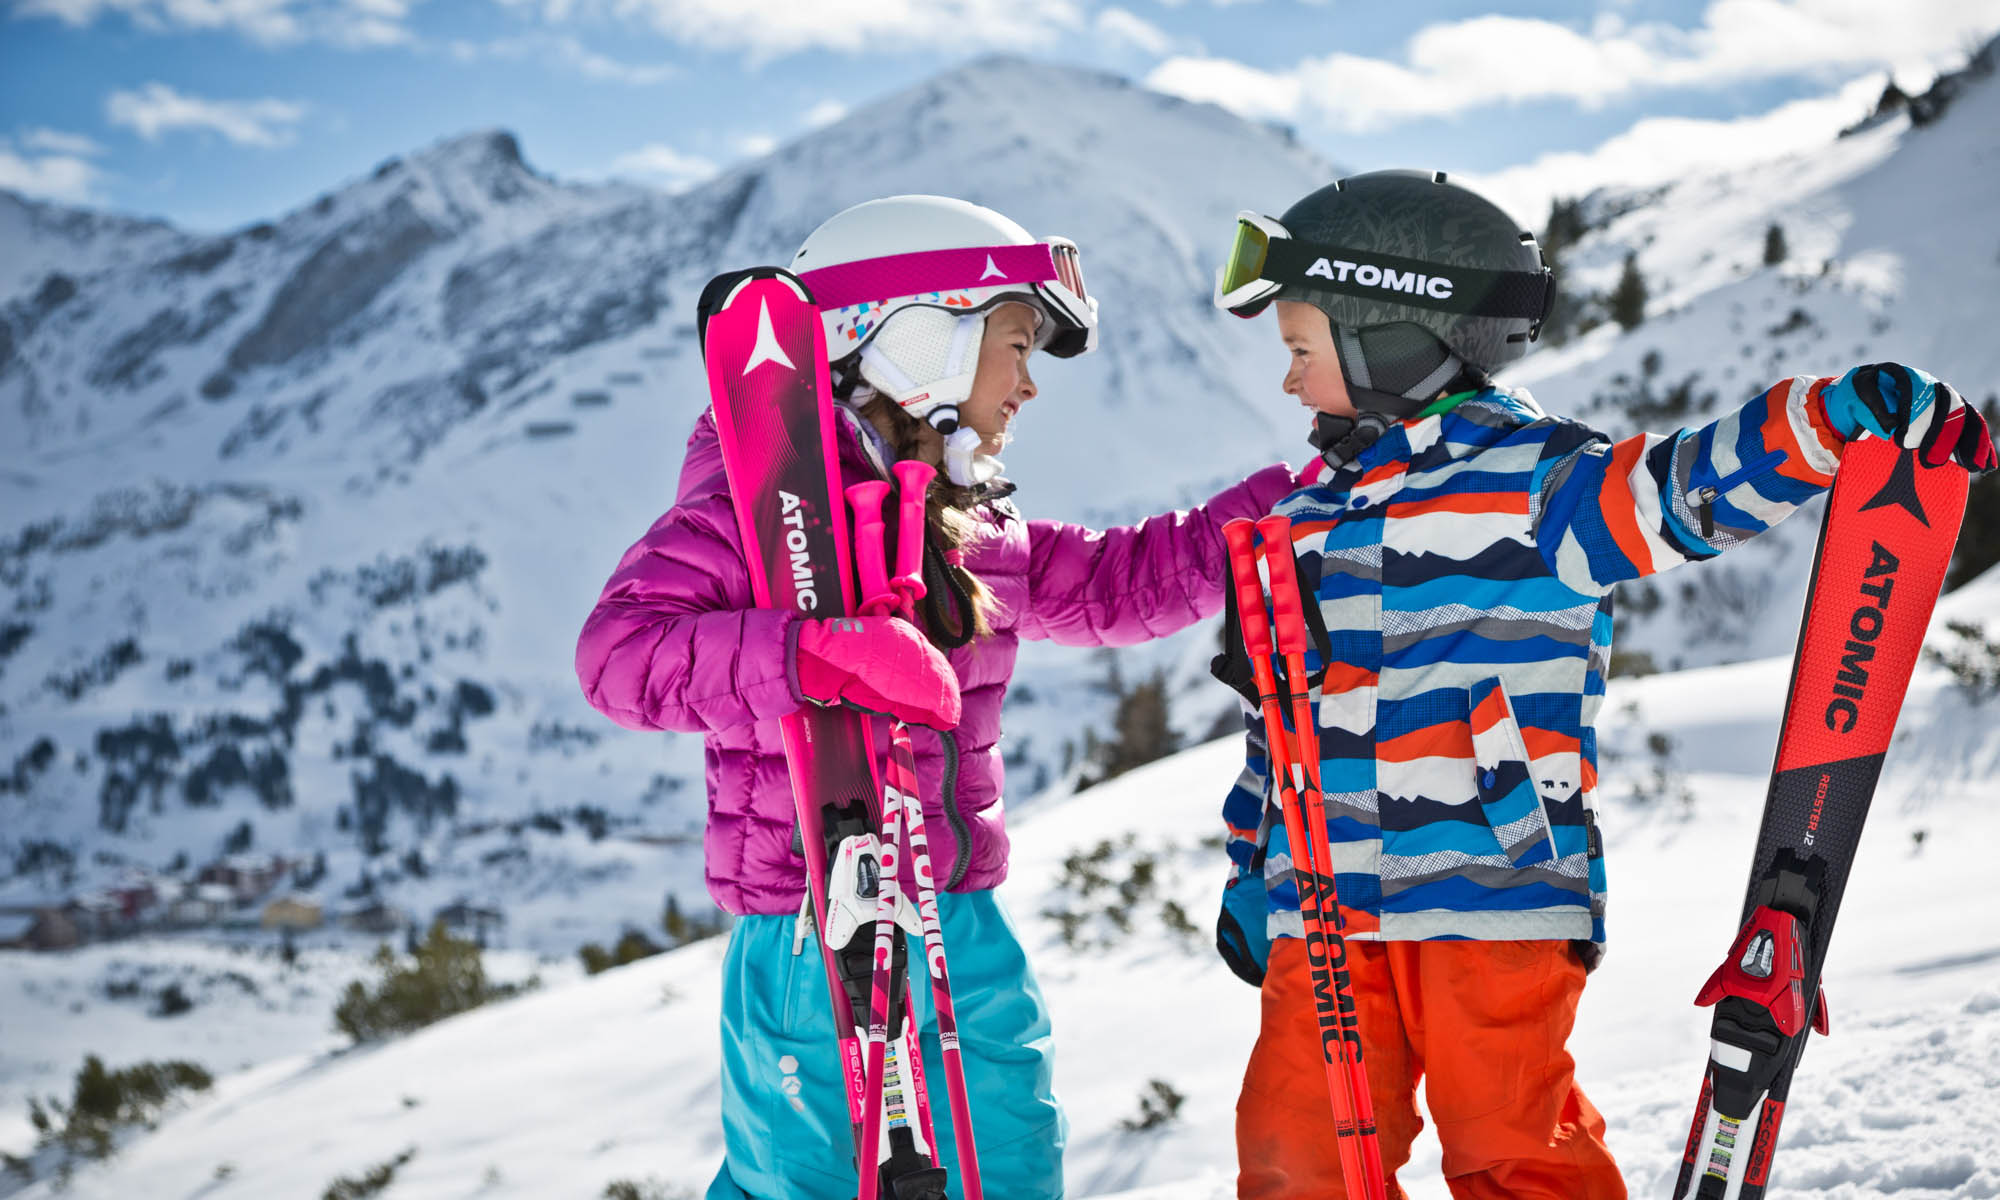 A young boy and girl holding Atomic skis.